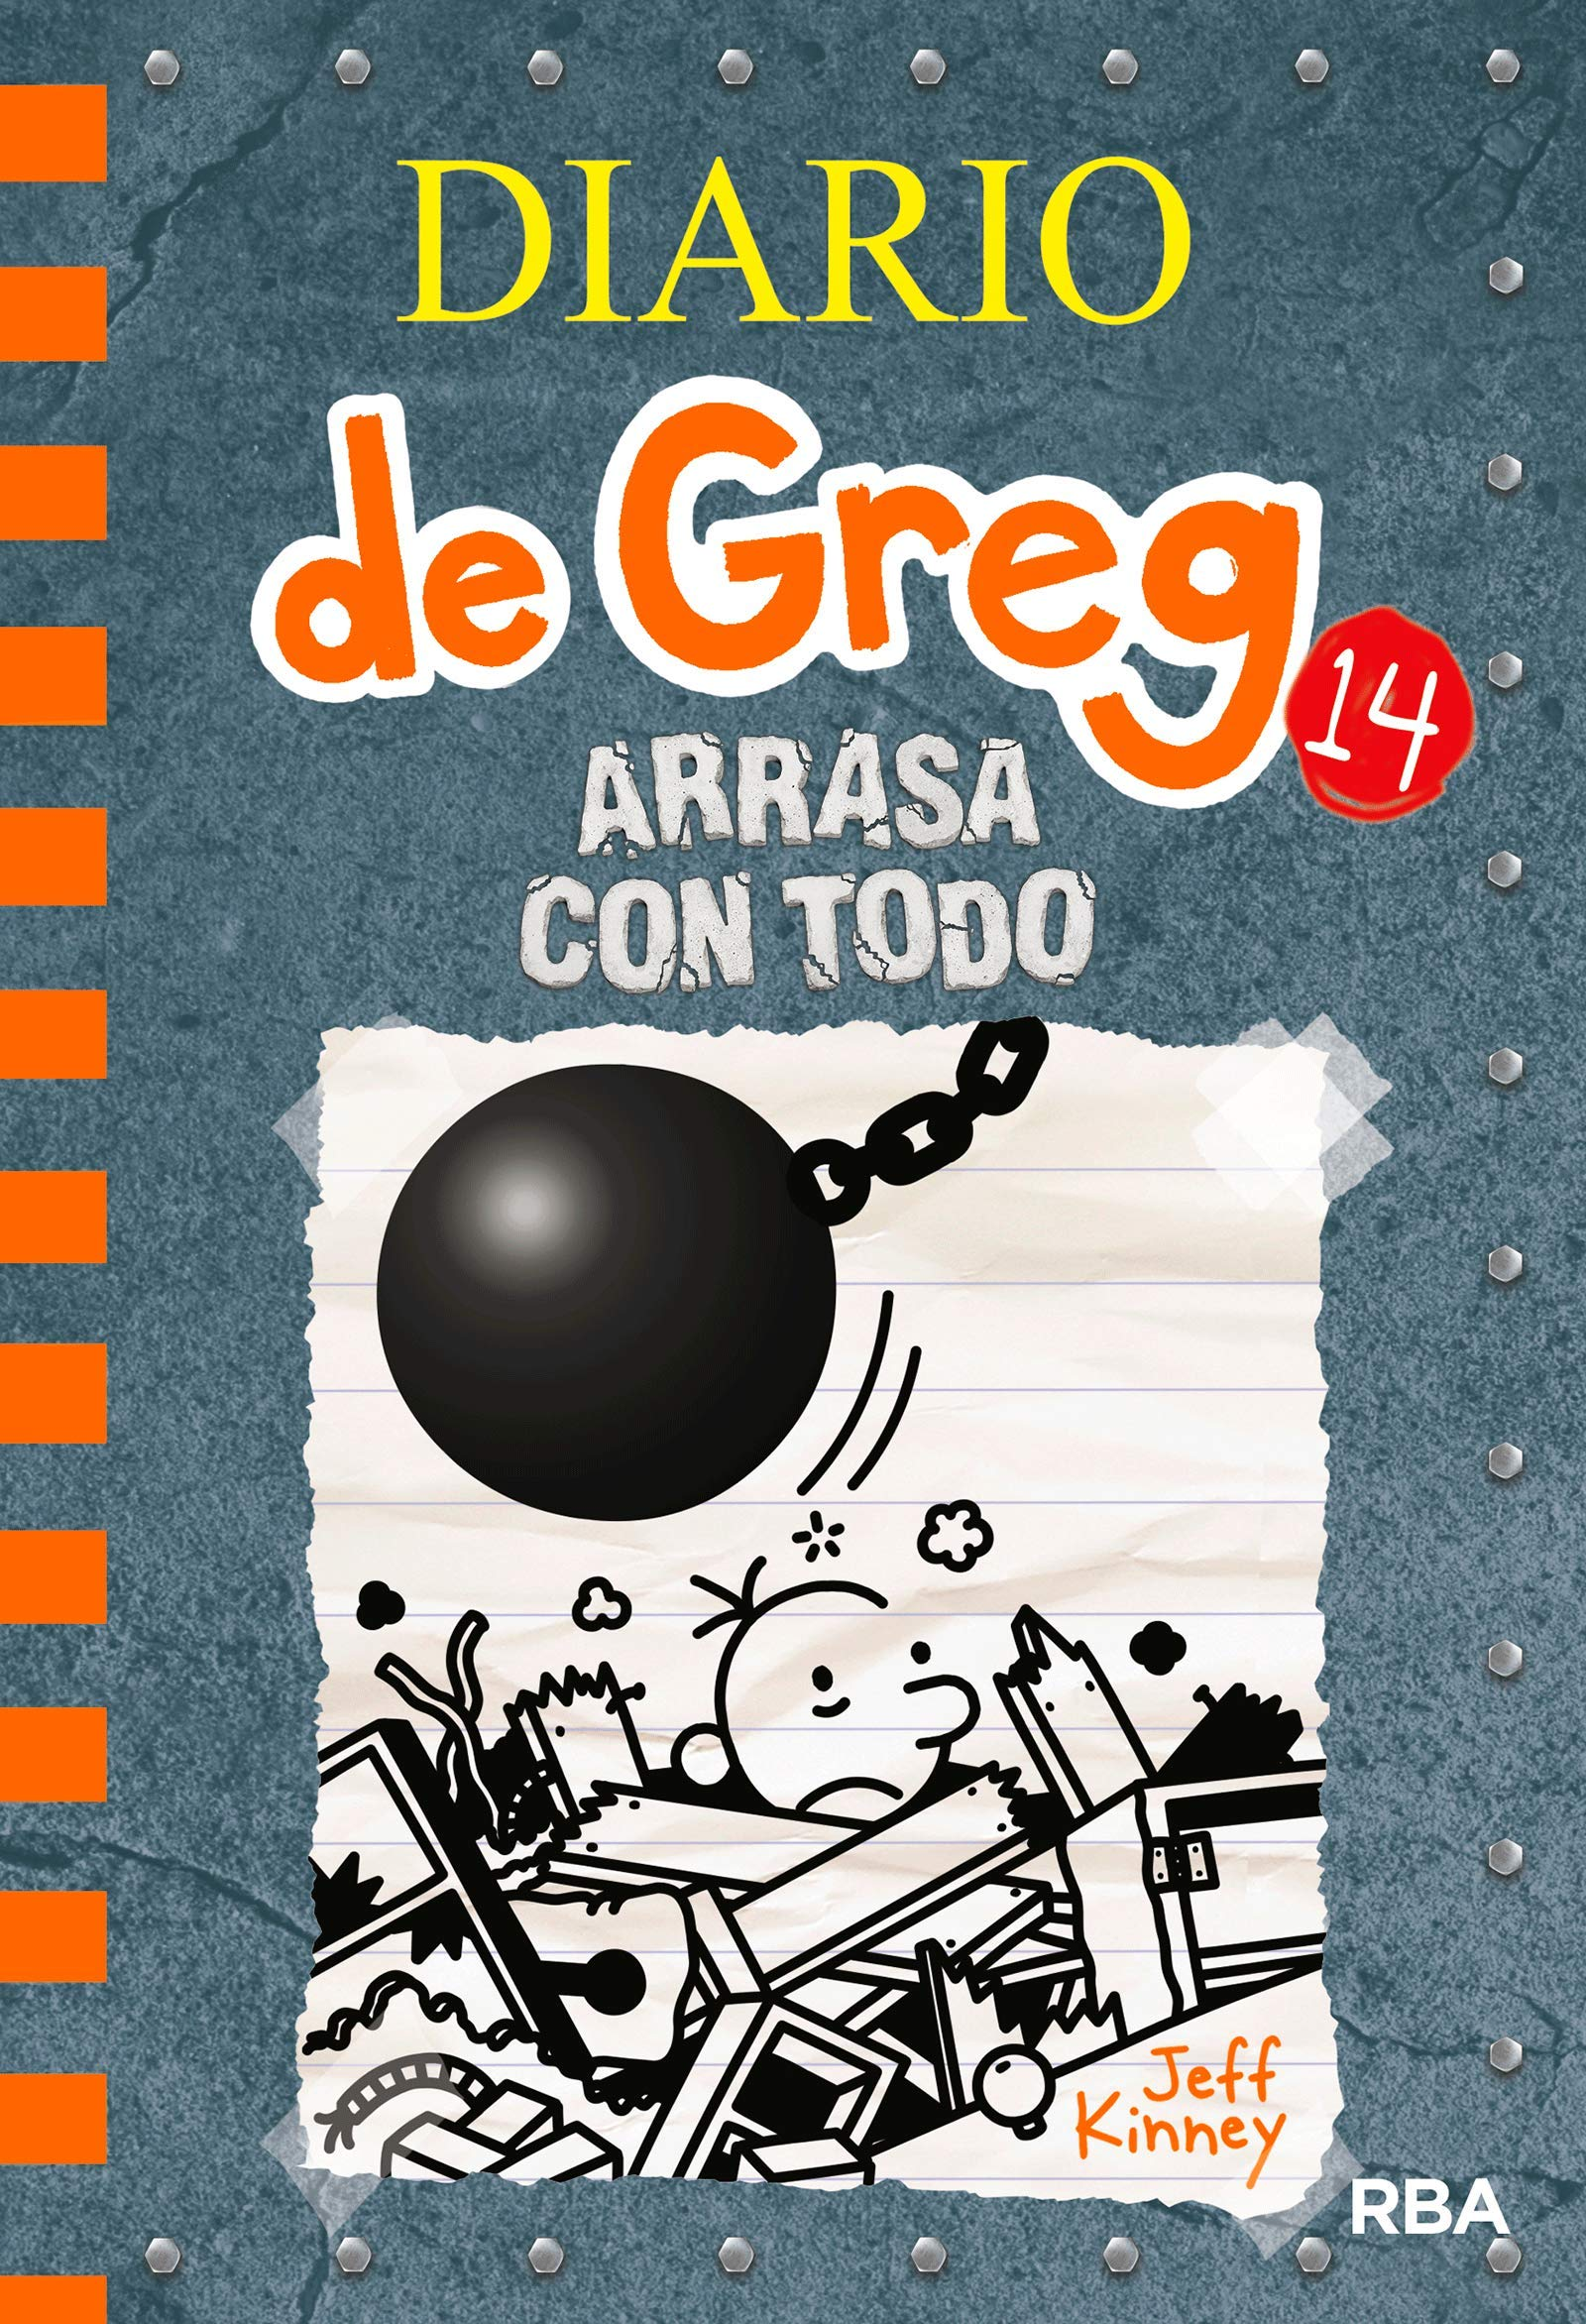 Diario de Greg 14. Arrasa con todo: Amazon.es: Jeff Kinney ...